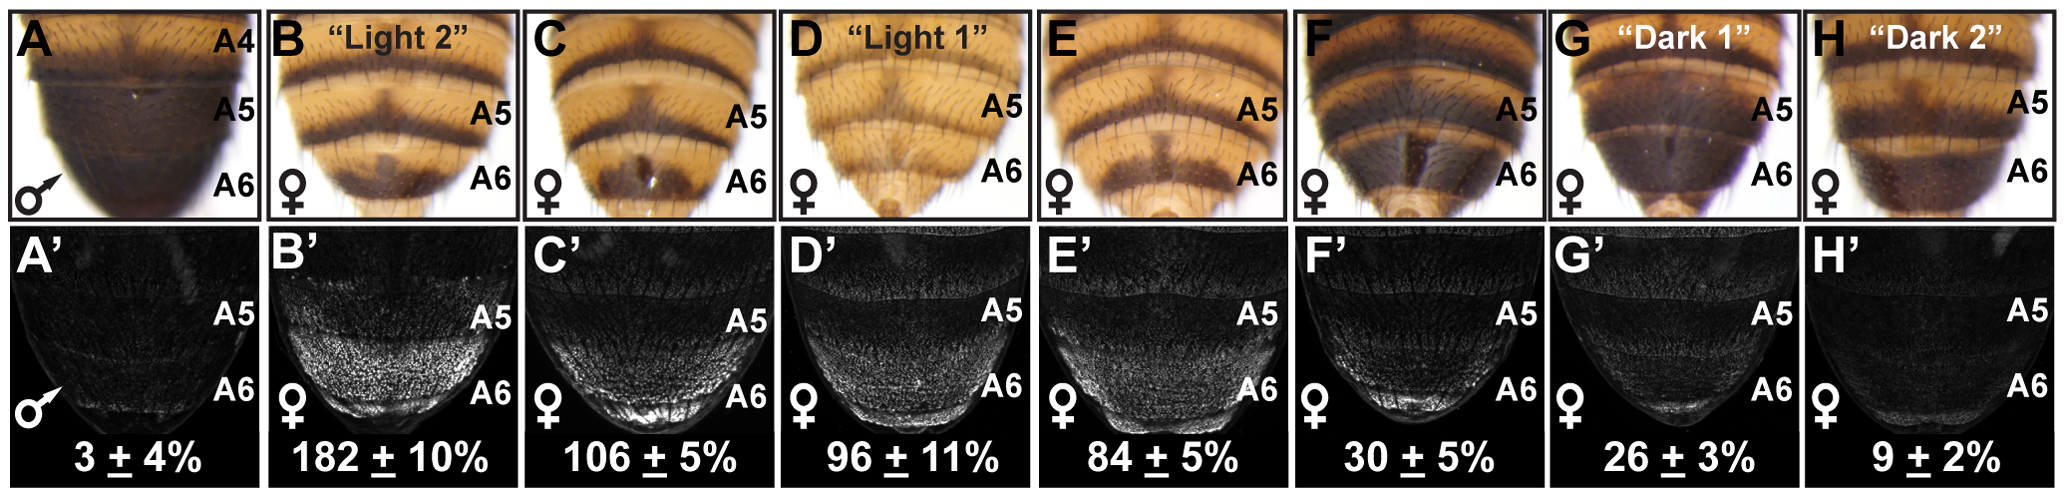 Abdomen pigmentation correlates with the regulatory activity of dimorphic element alleles.